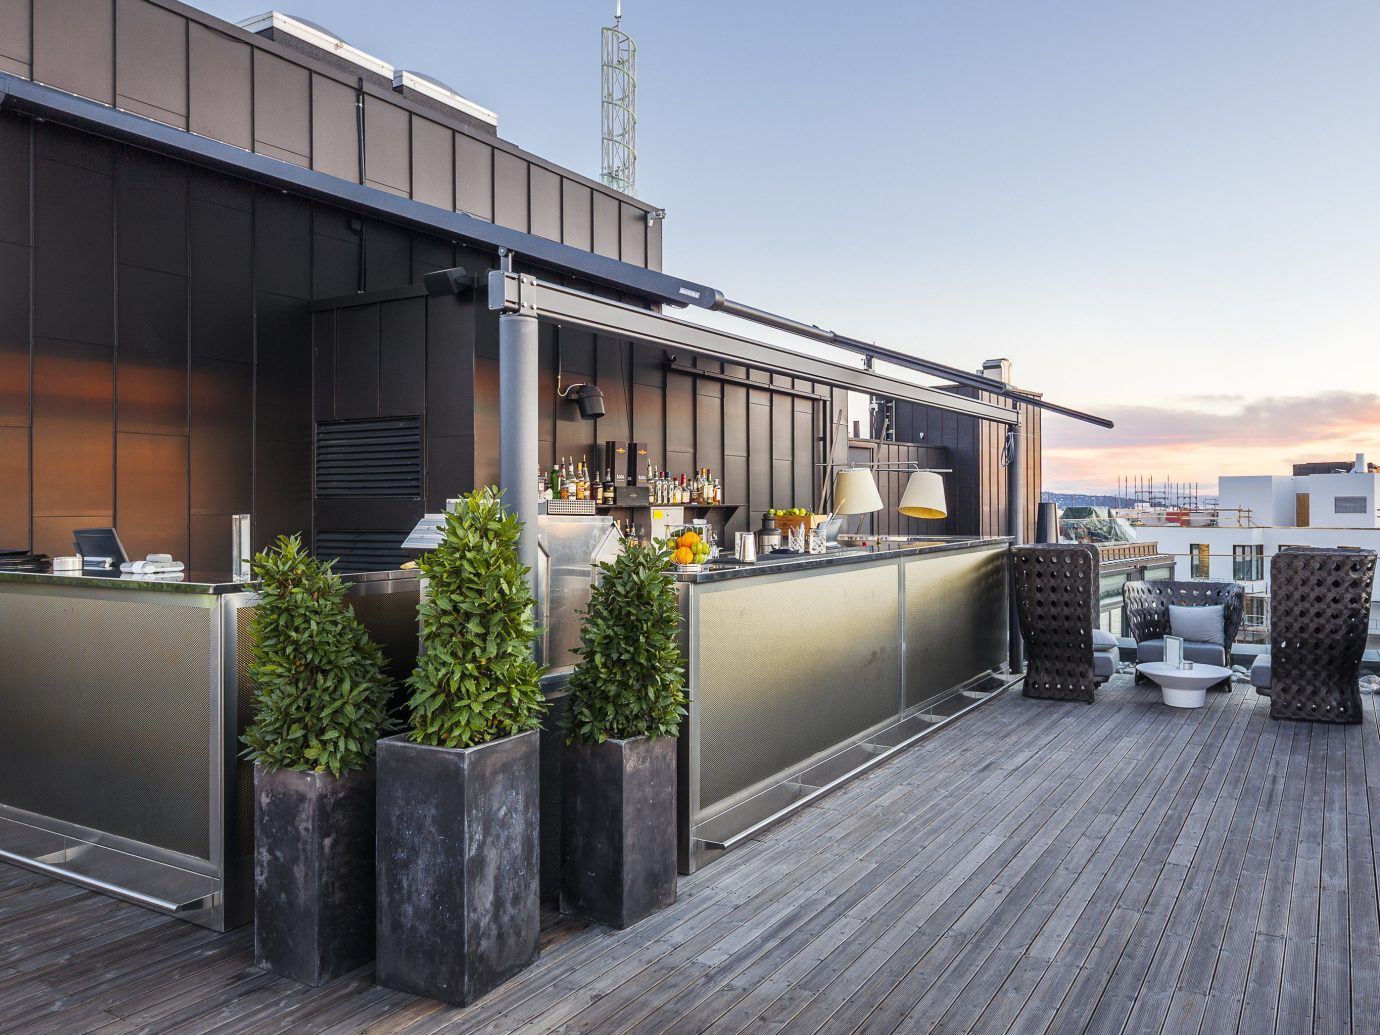 Design Hotels Norway Oslo Trip Ideas Architecture house real estate home apartment roof facade